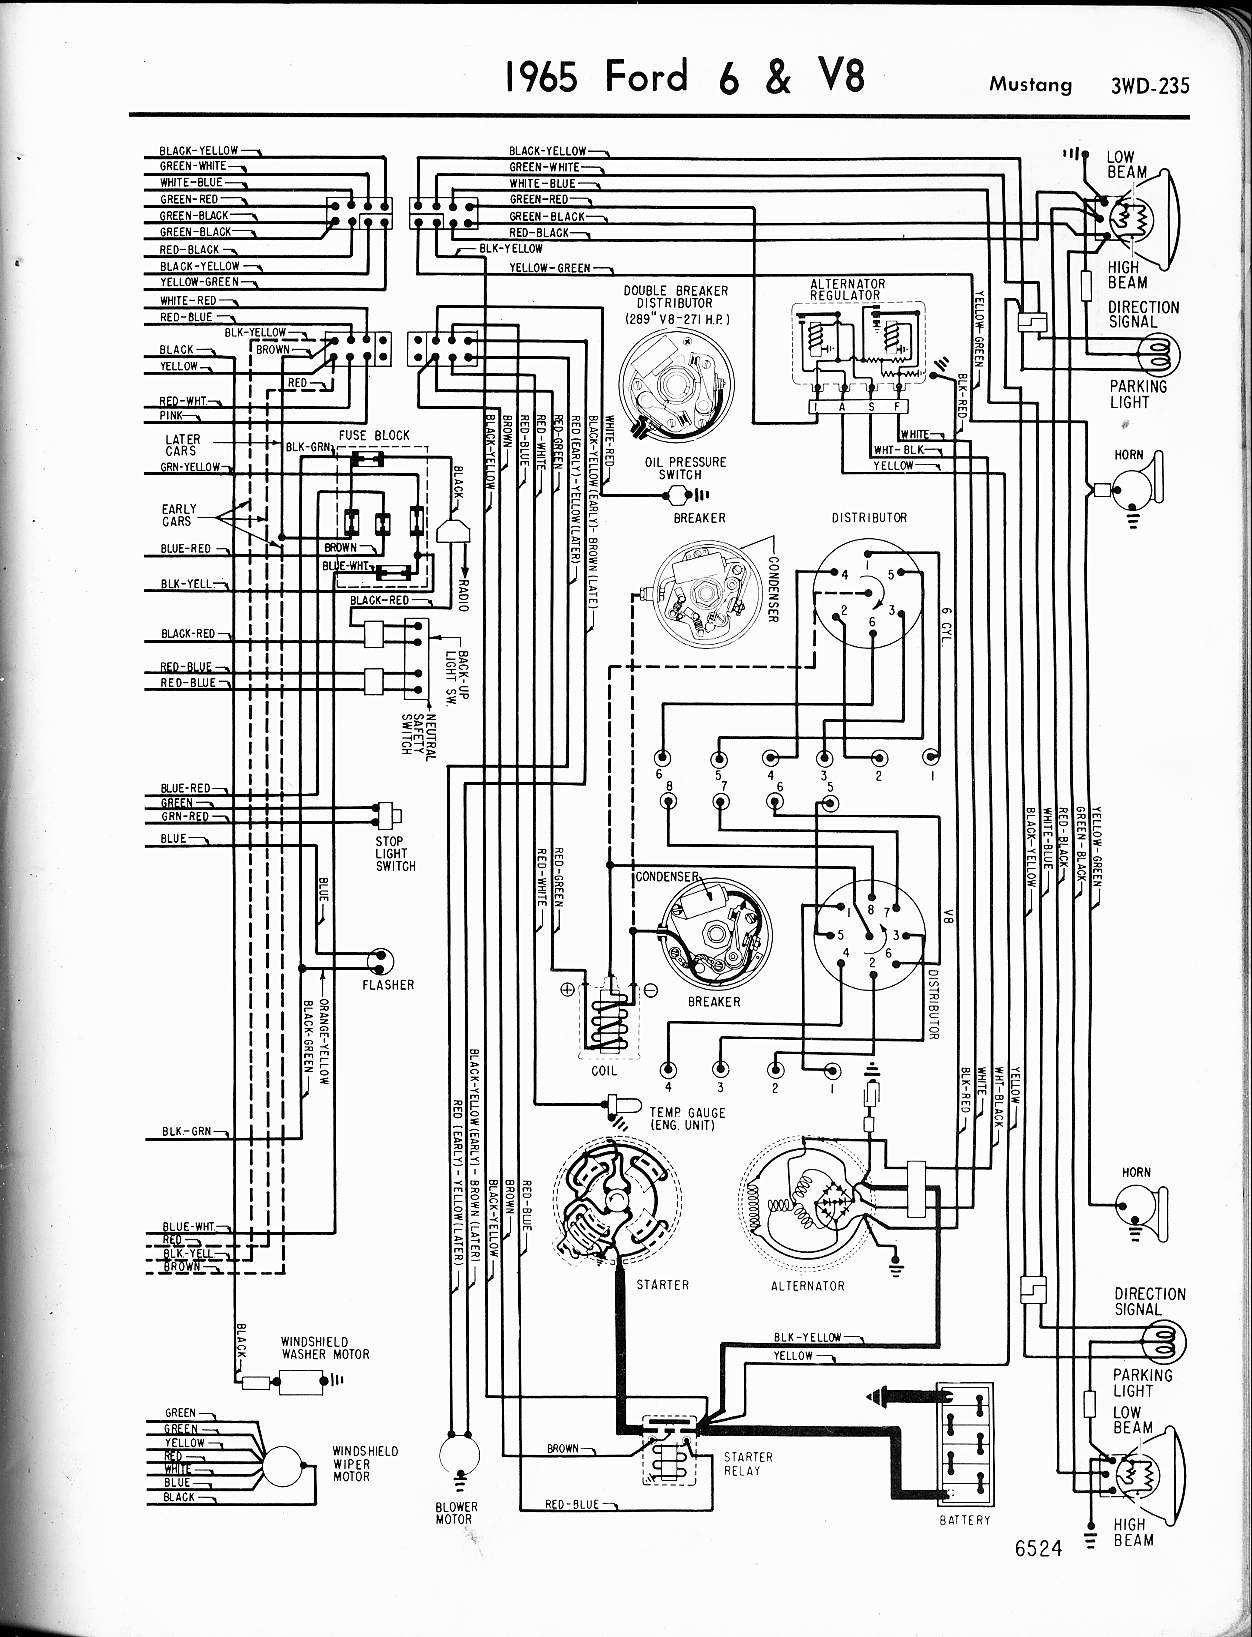 1965_mustang_wiring_2 ford diagrams Terminator Time Loop Diagram at readyjetset.co